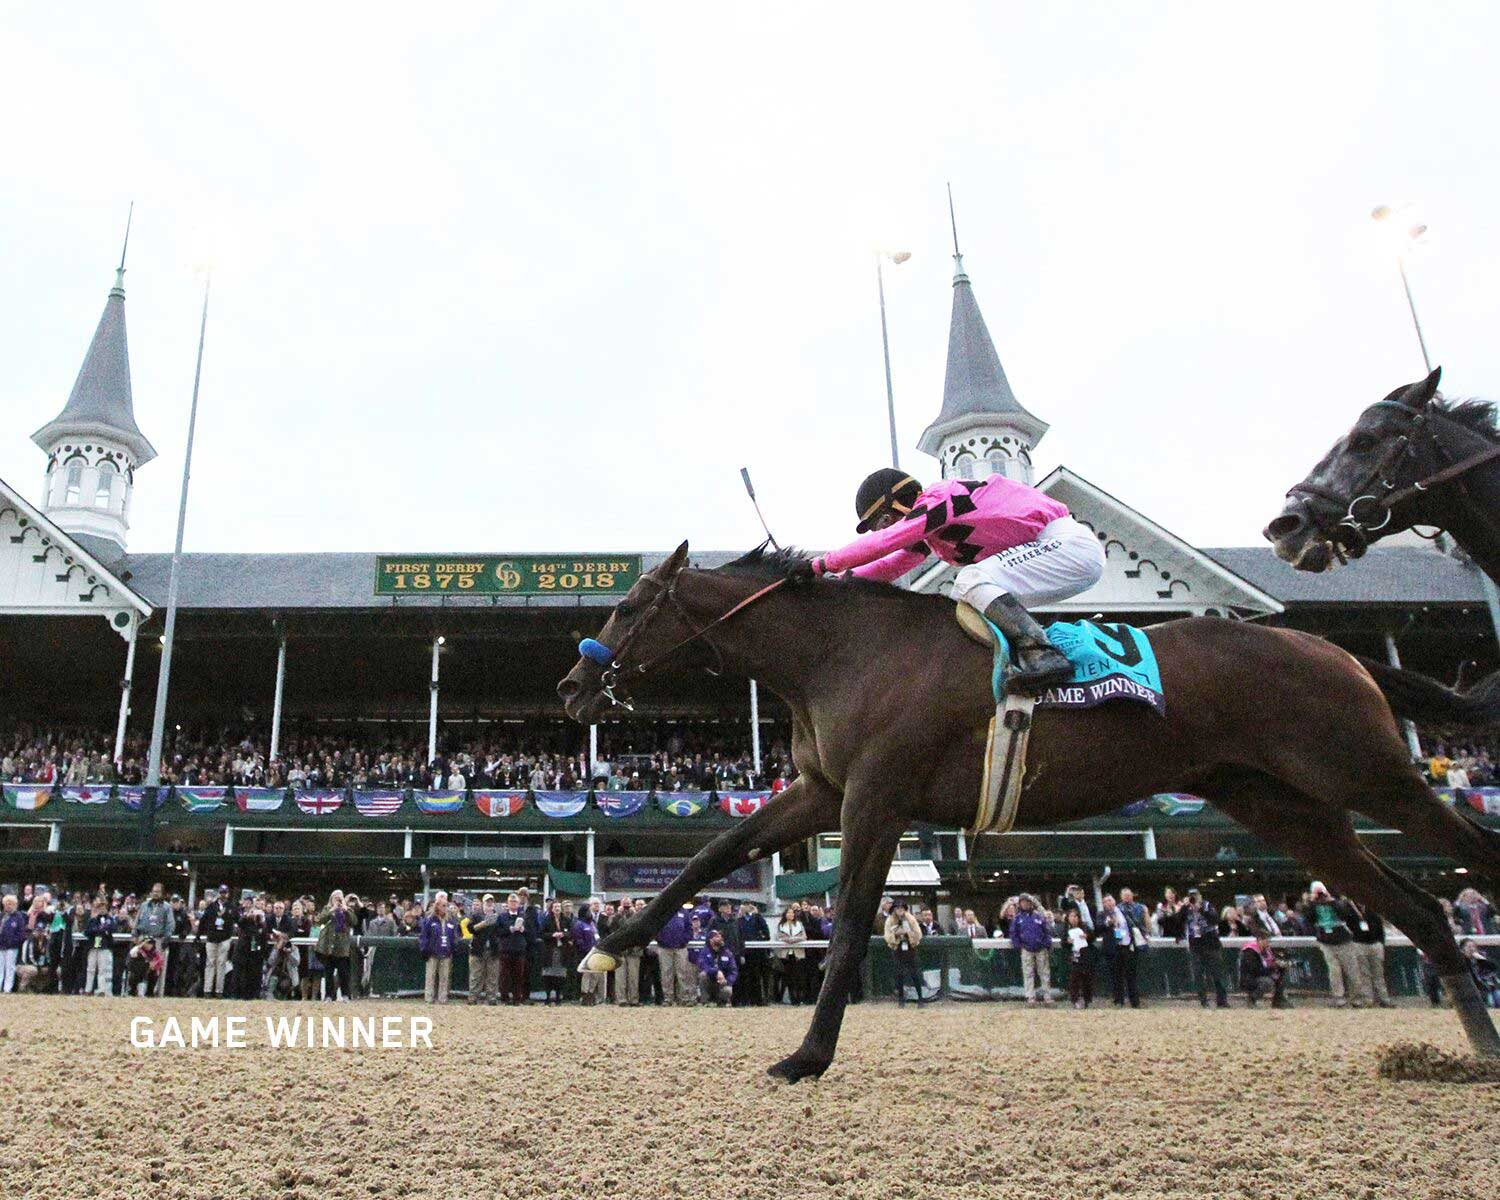 Game Winner wins the Breeders' Cup Juvenile Grade 1